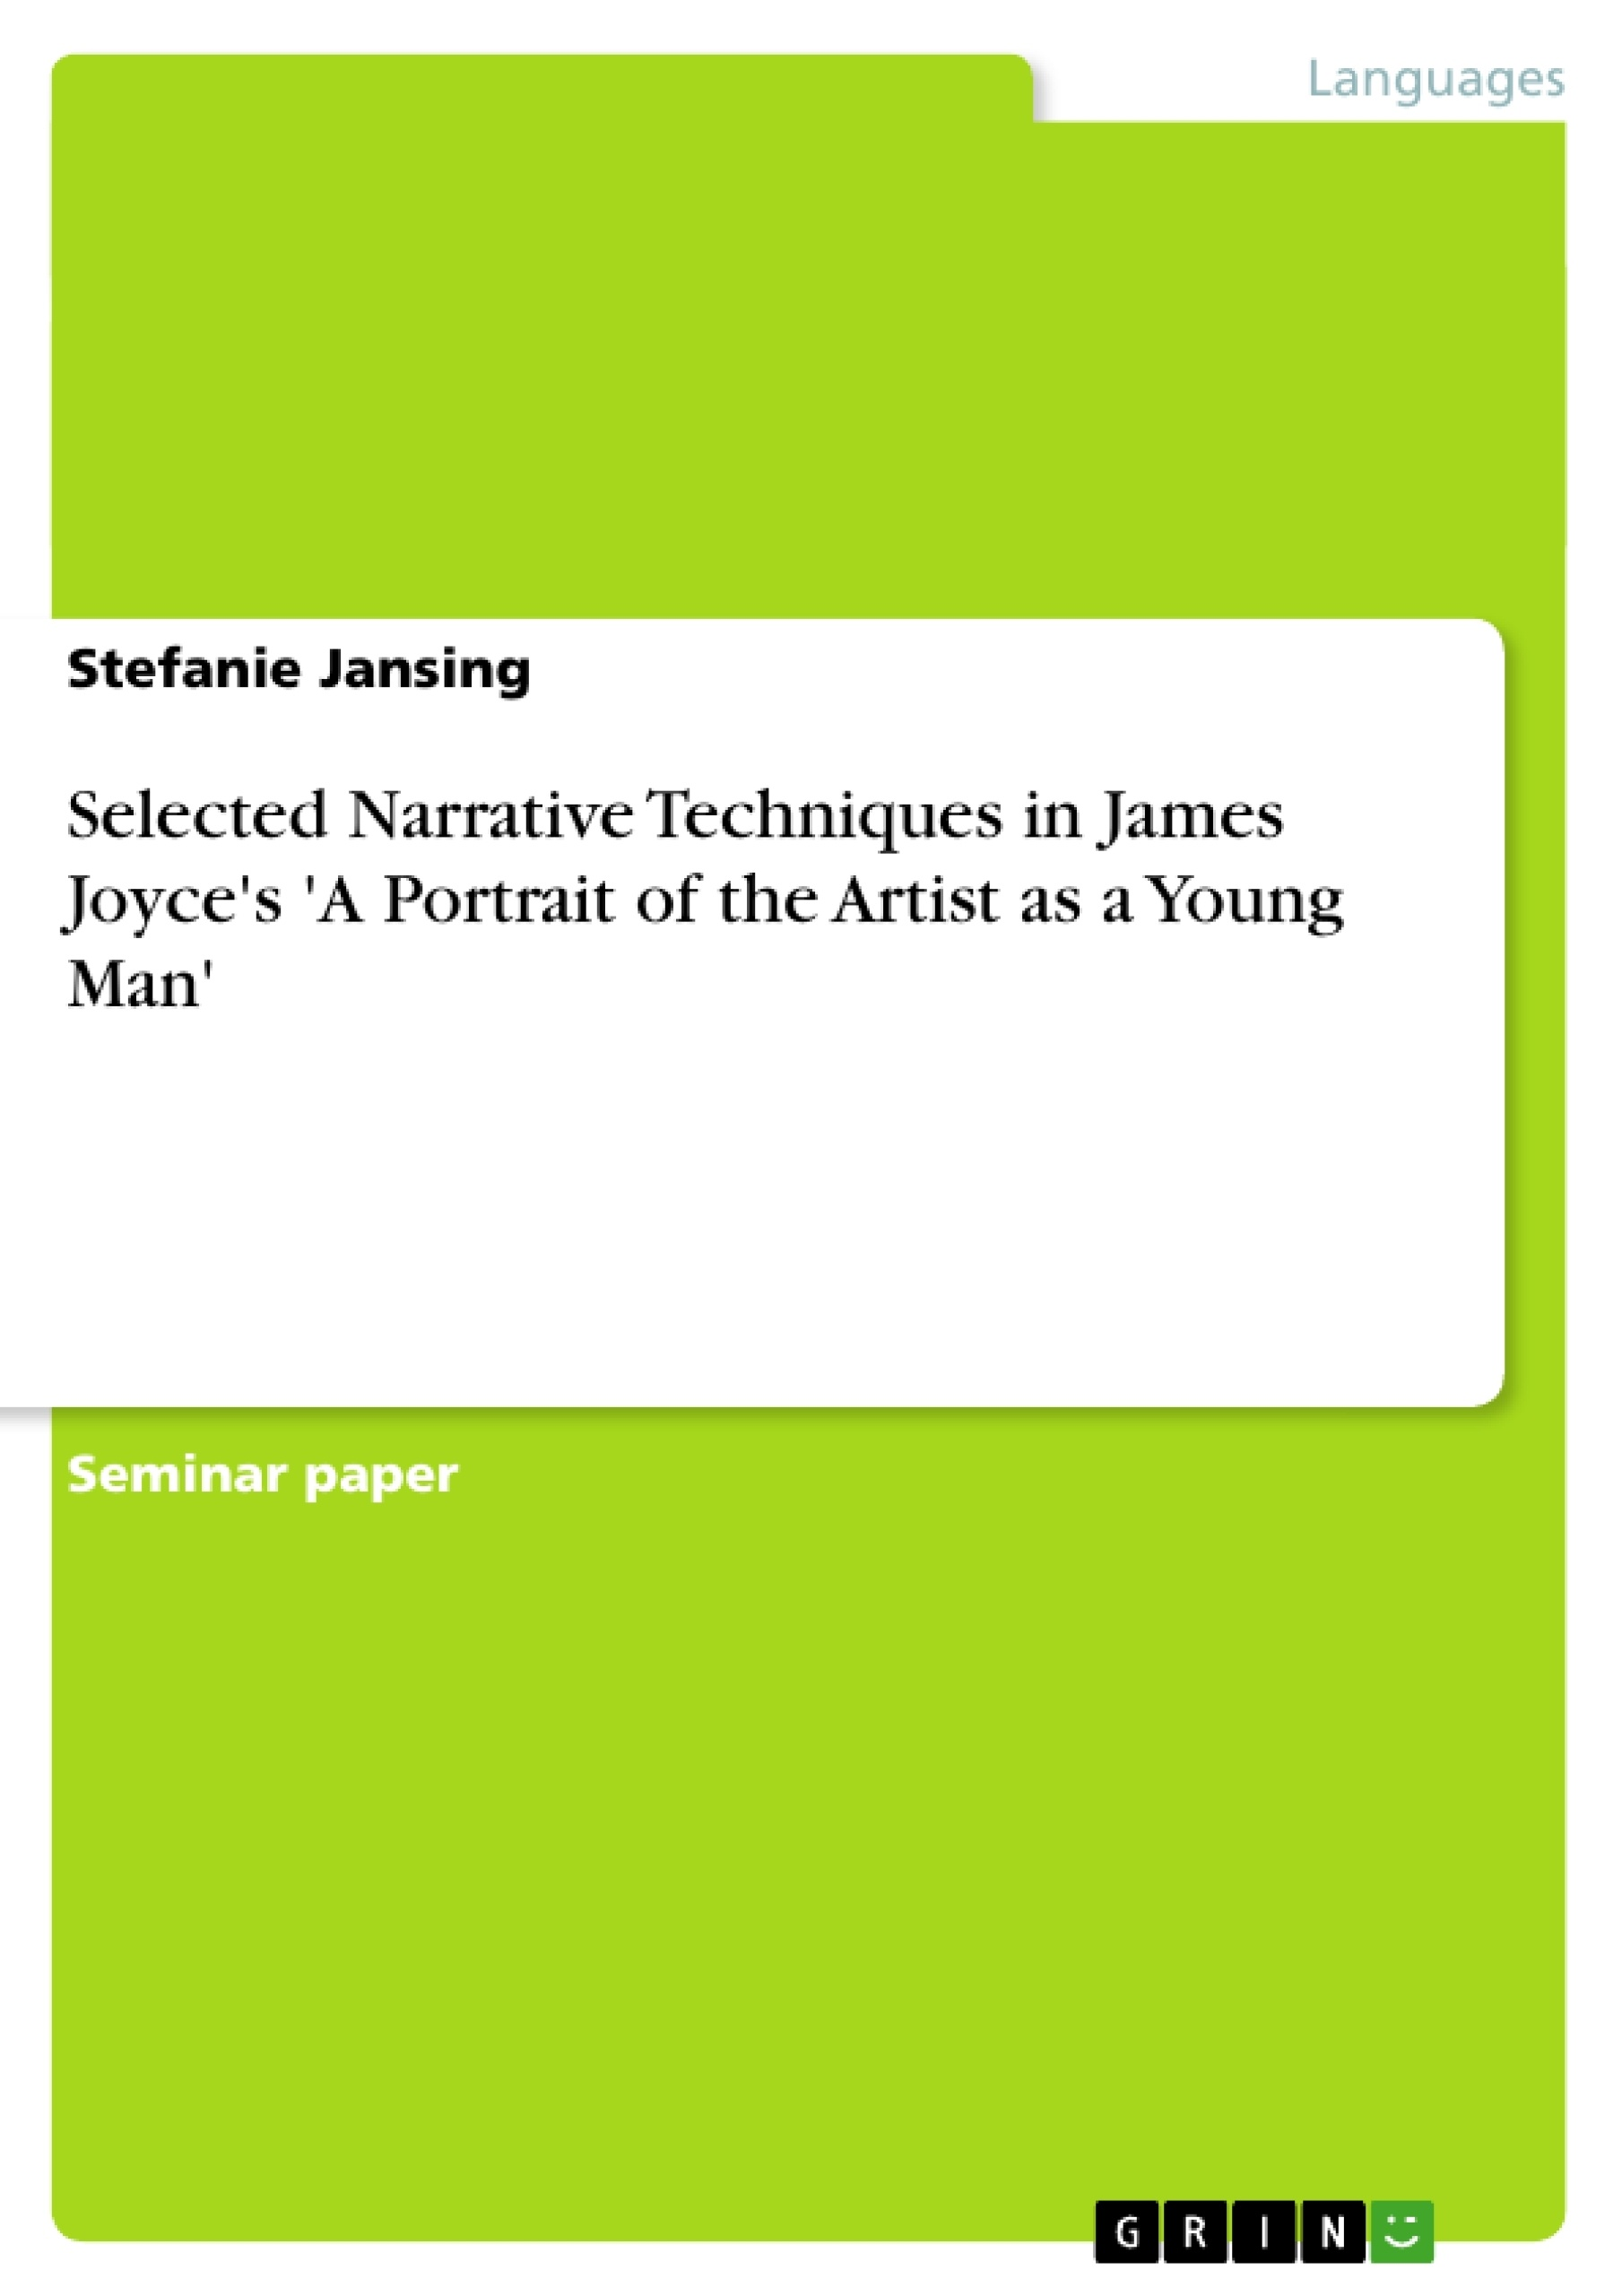 selected narrative techniques in james joyce s a portrait of the selected narrative techniques in james joyce s a portrait of the publish your master s thesis bachelor s thesis essay or term paper